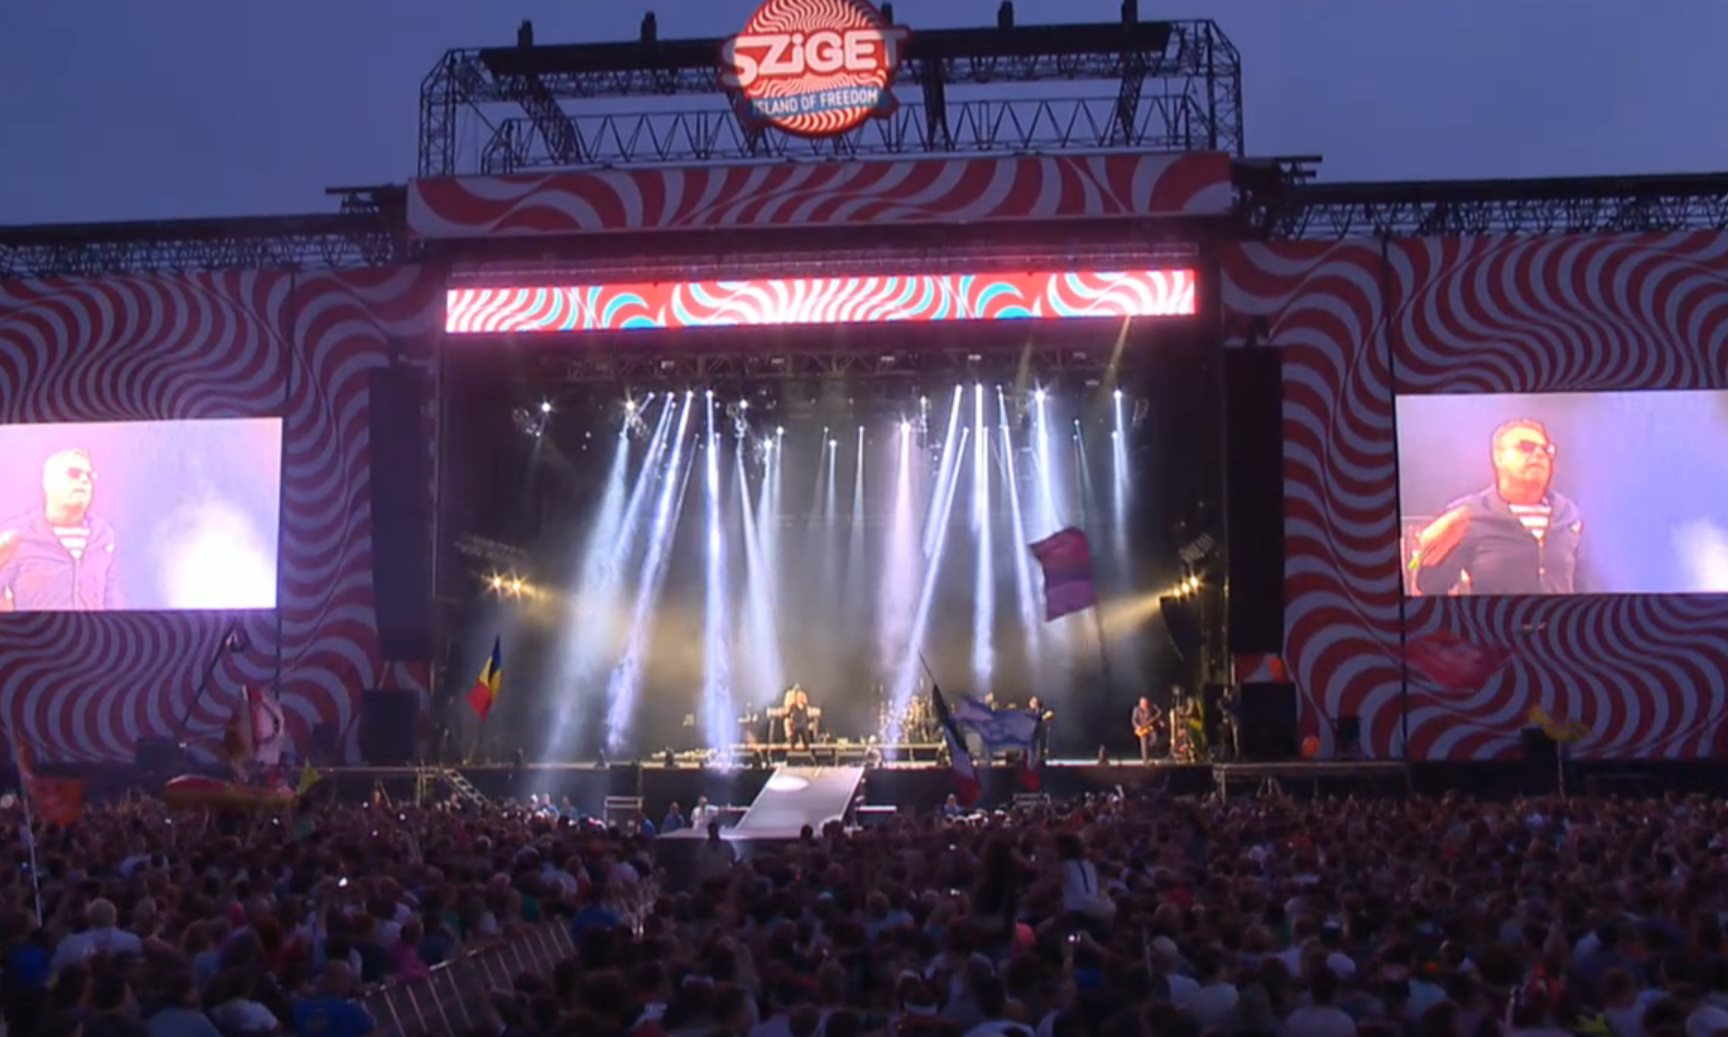 Sziget 2014 aftermovie